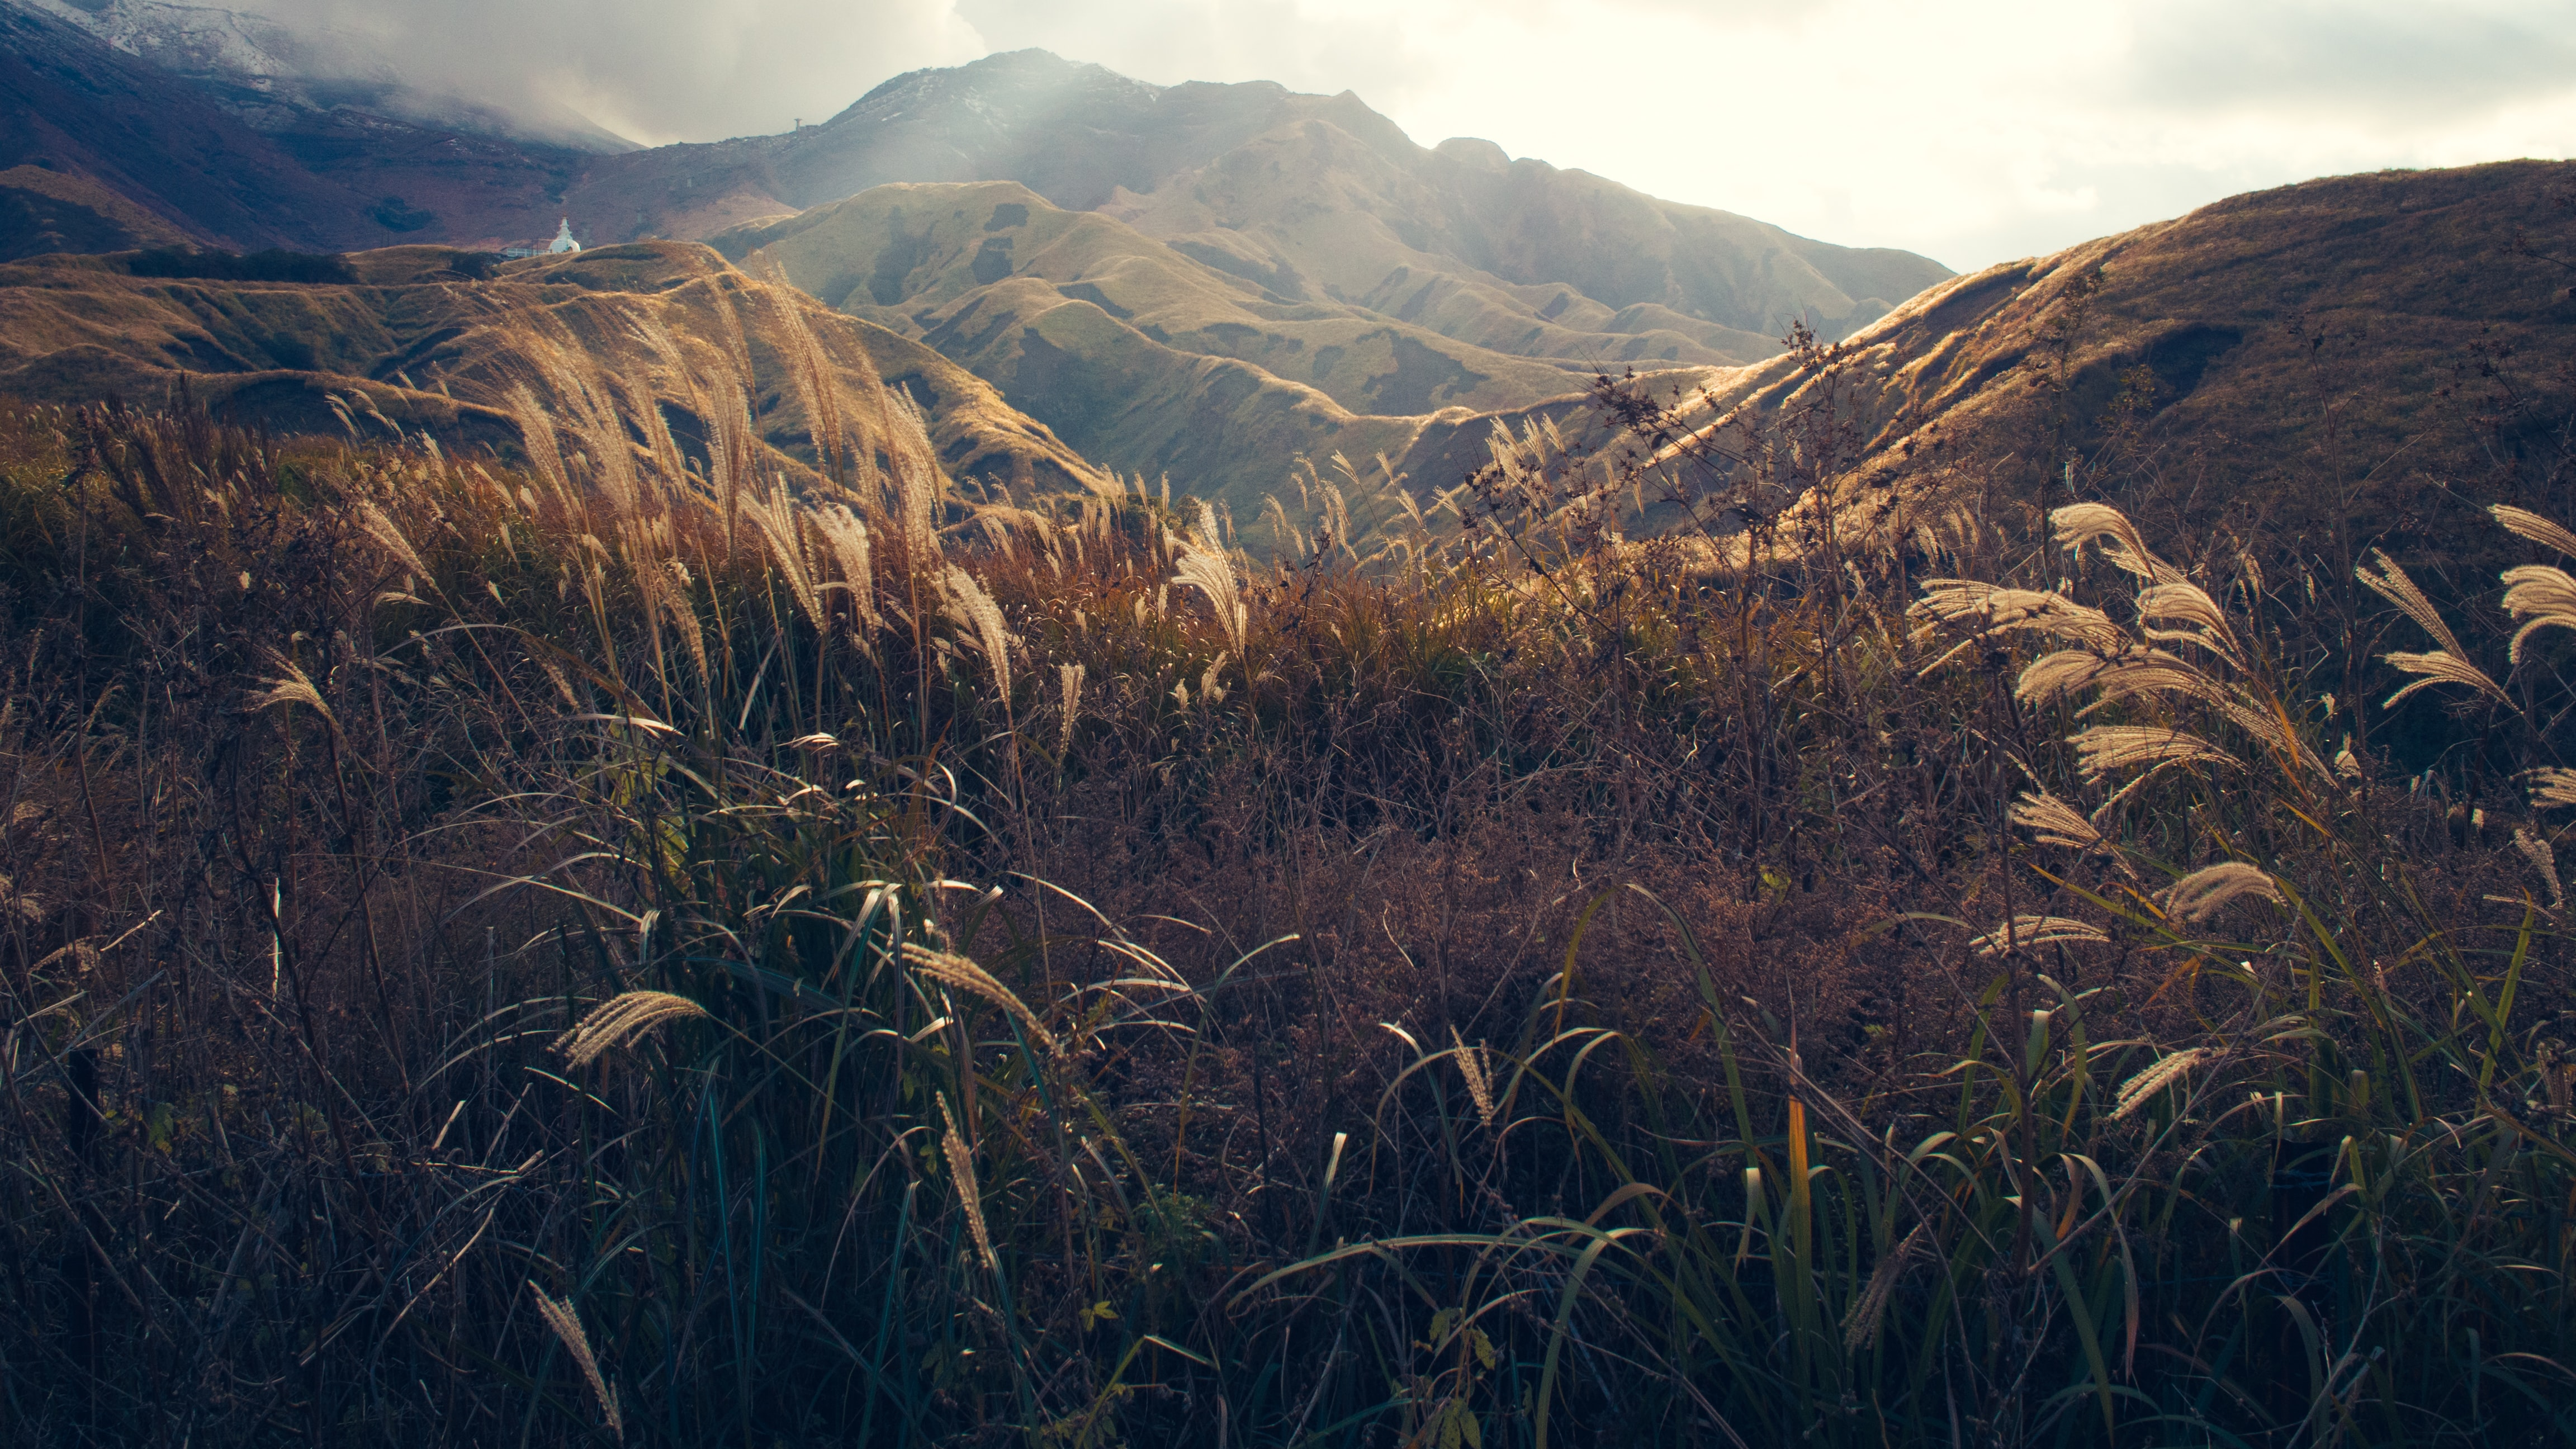 Tall blades of golden grass swaying in the wind in front of a scenic mountain landscape